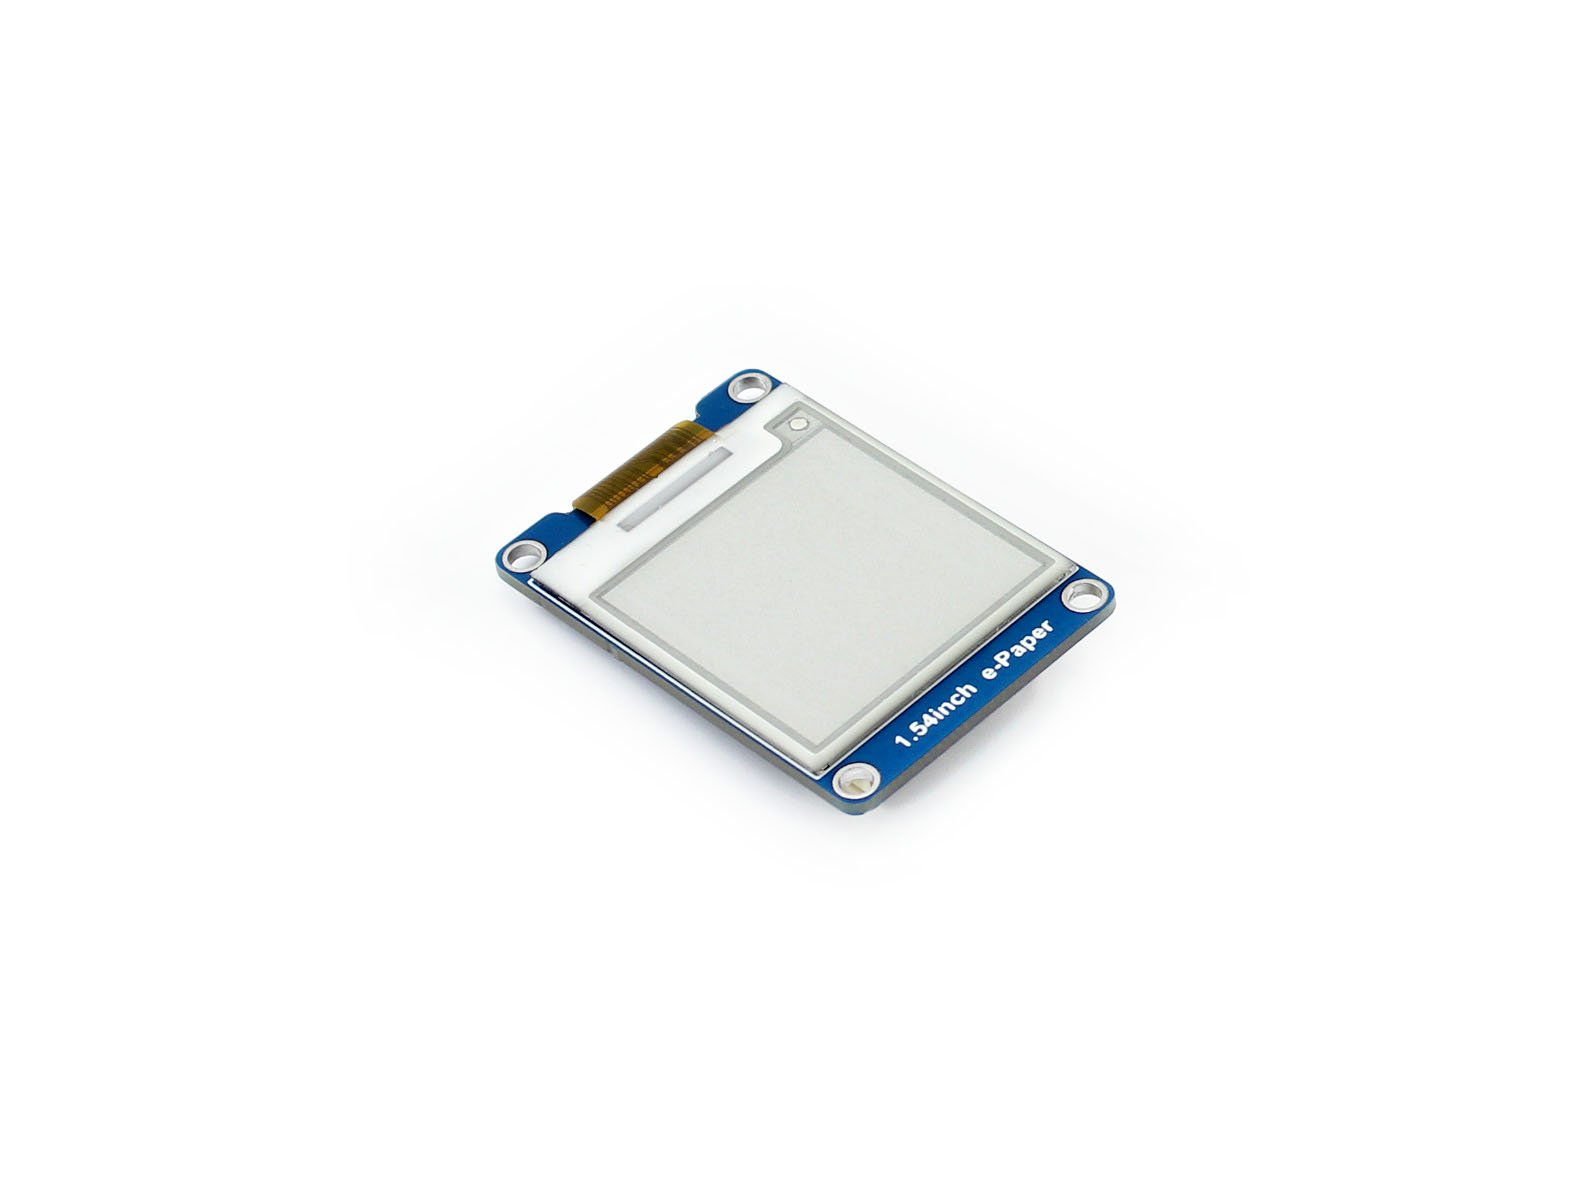 200x200, 1.54inch E-Ink display module,1.54inch e-Paper,SPI interface,Supports partial refresh by waveshare (Image #7)